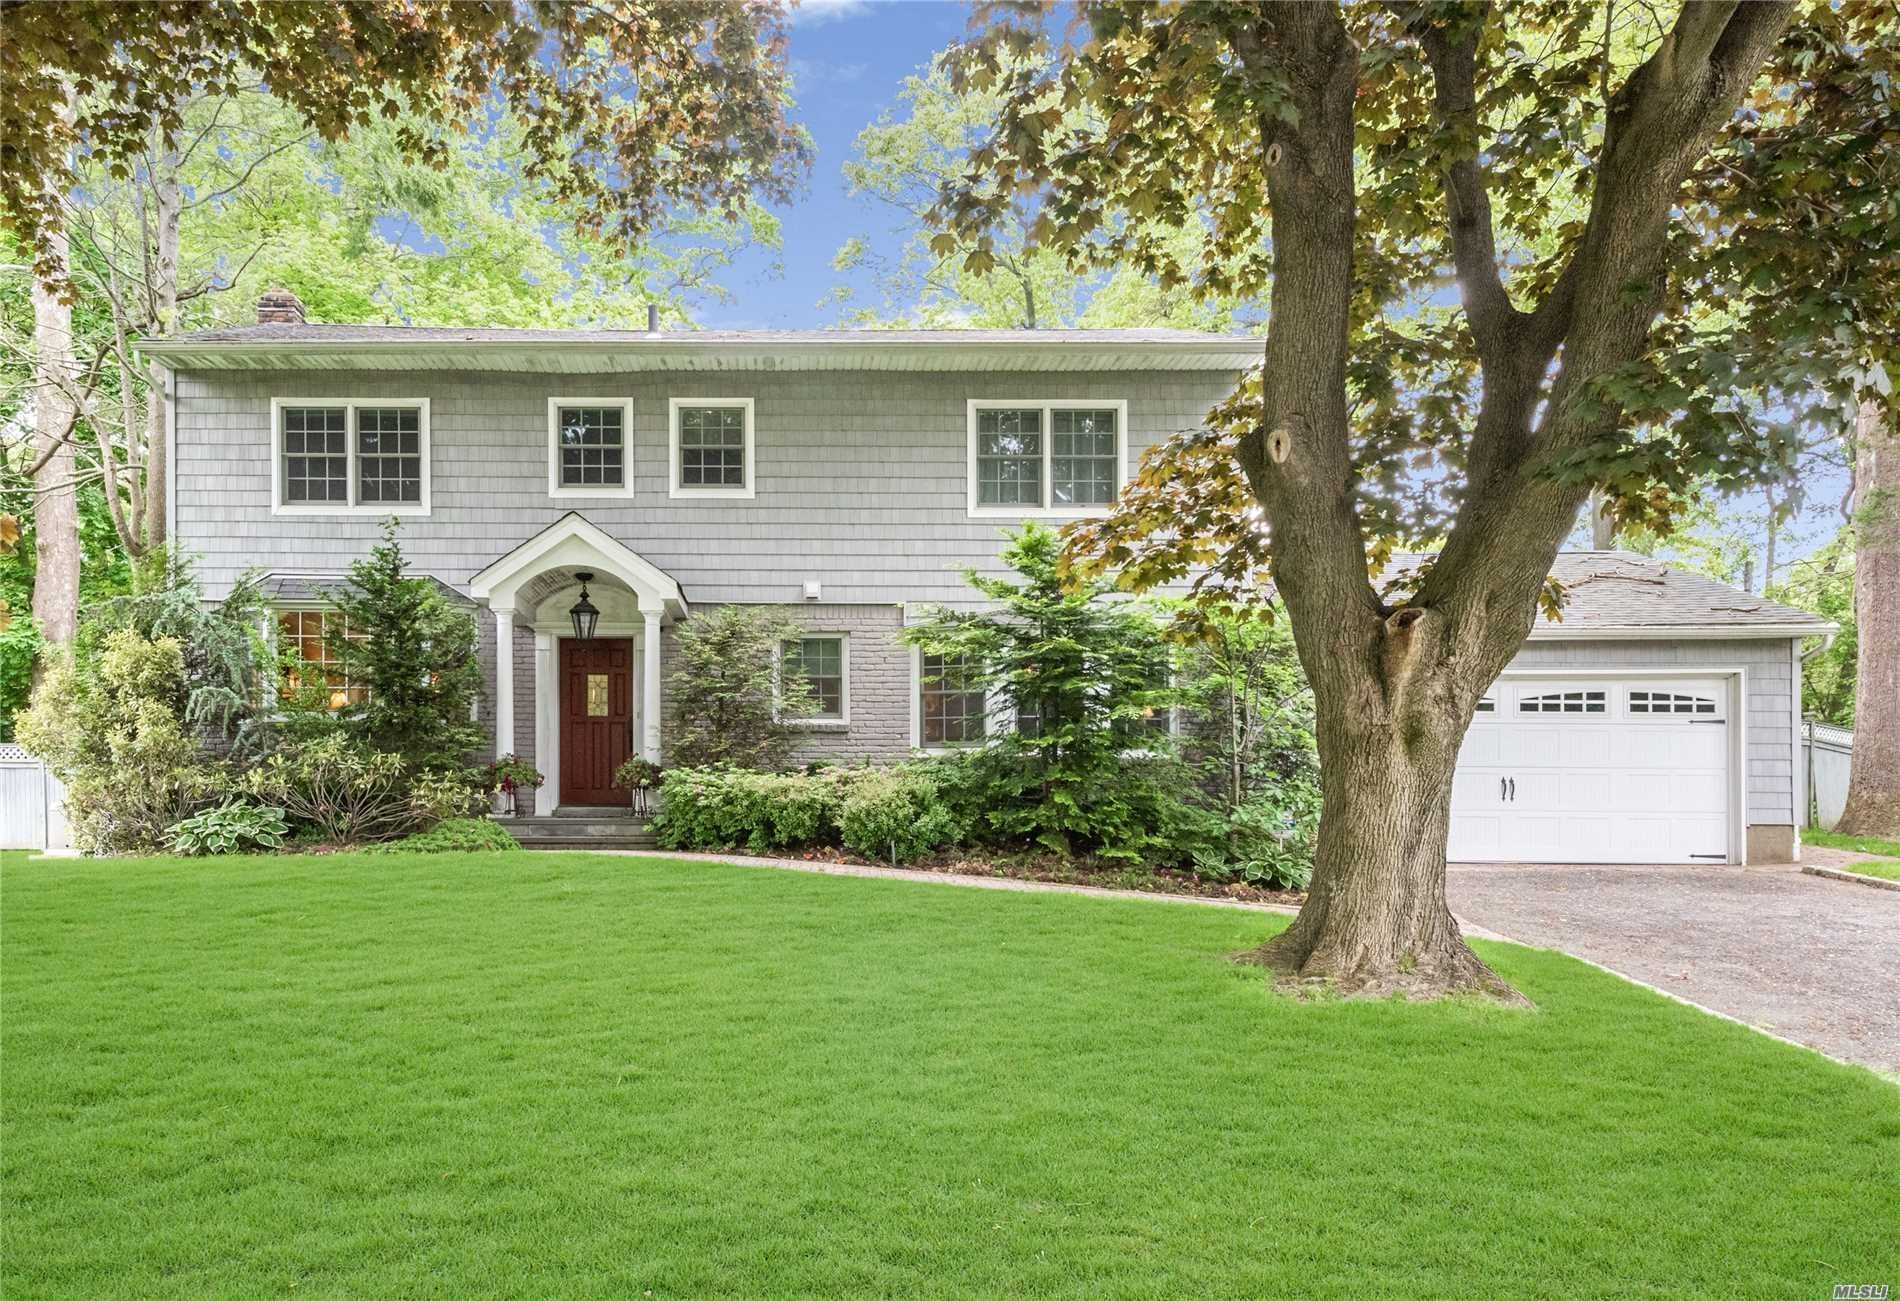 Totally Renovated Center Hall Colonial In The Desirable Roxbury Section. Chef's Kitchen, Spacious Family Room Addition W/Fp And Sliding Glass Doors To An Expansive Backyard Patio & Inground Pool W/Hot Tub. Formal Lr W/Fp, Fdr, W 2 Powder Rms & Laundry Complete 1st Floor. Master Suite W/Large Walk In Closet. Additional 2 Brs & Bth, 2 Car Garage, Cac, Cvac, Generator, Inground Sprinklers.A Perfect Home.